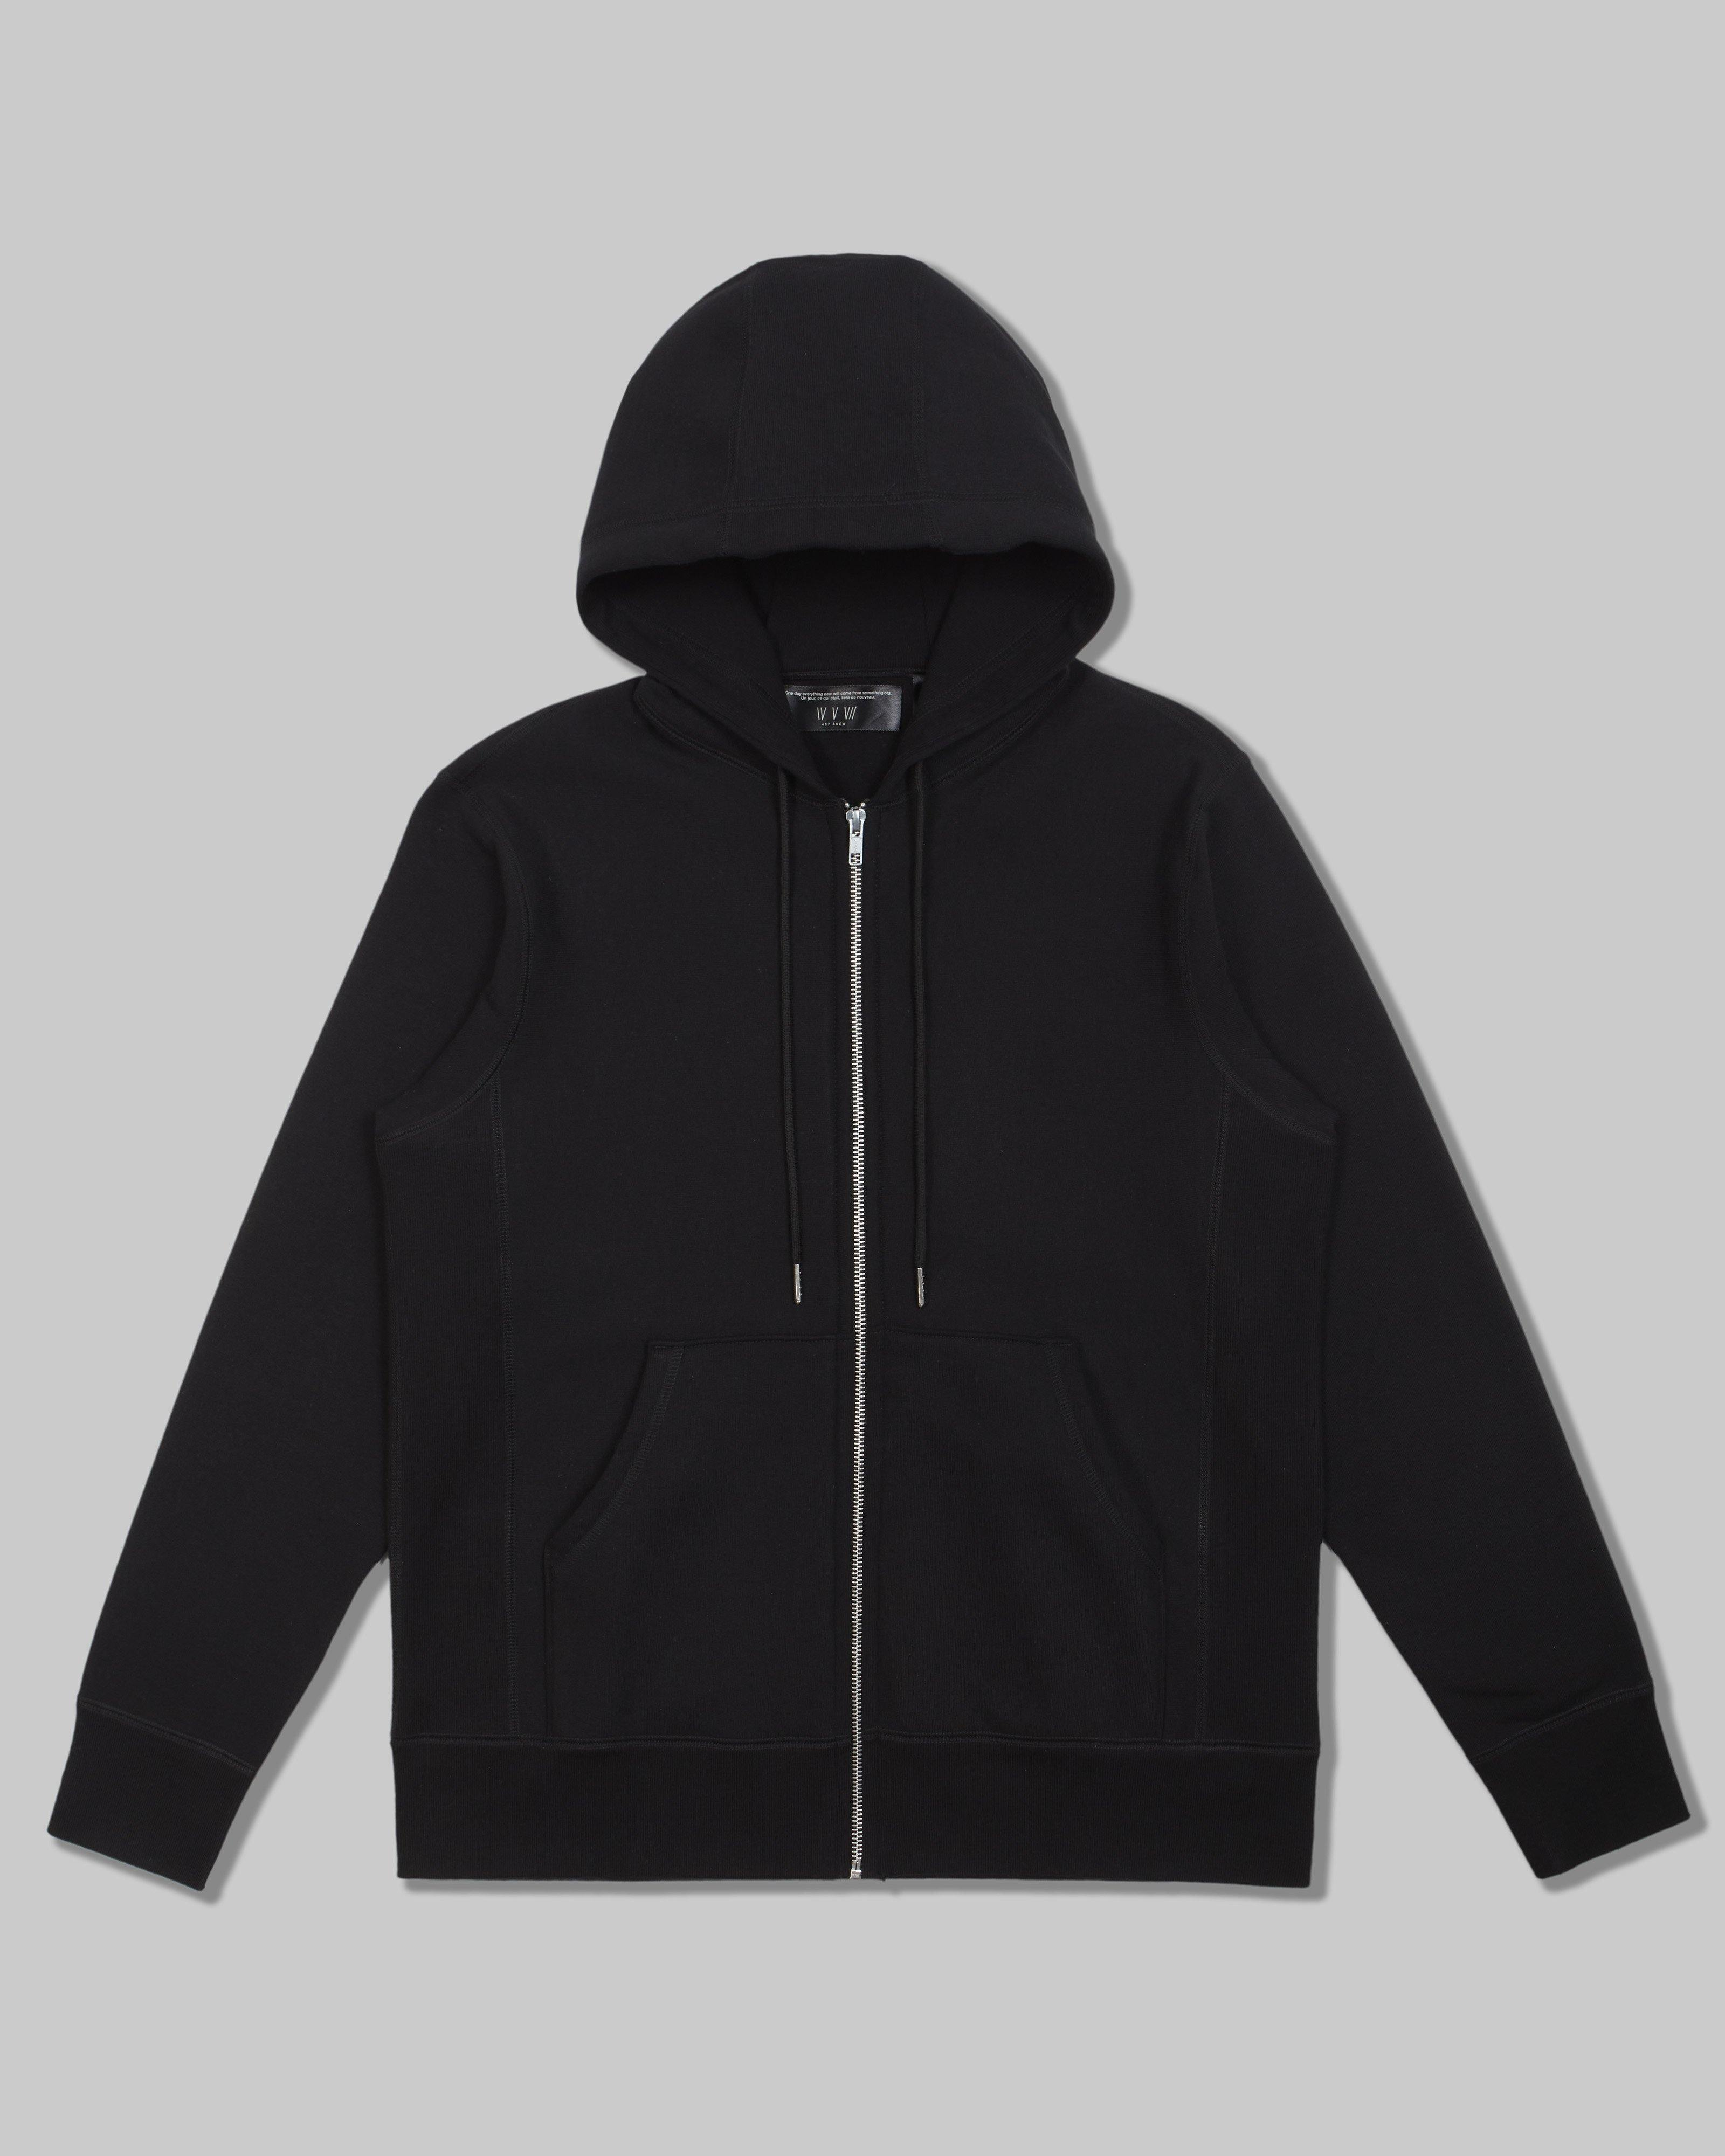 Zip Hoodie Heavyweight American Cotton